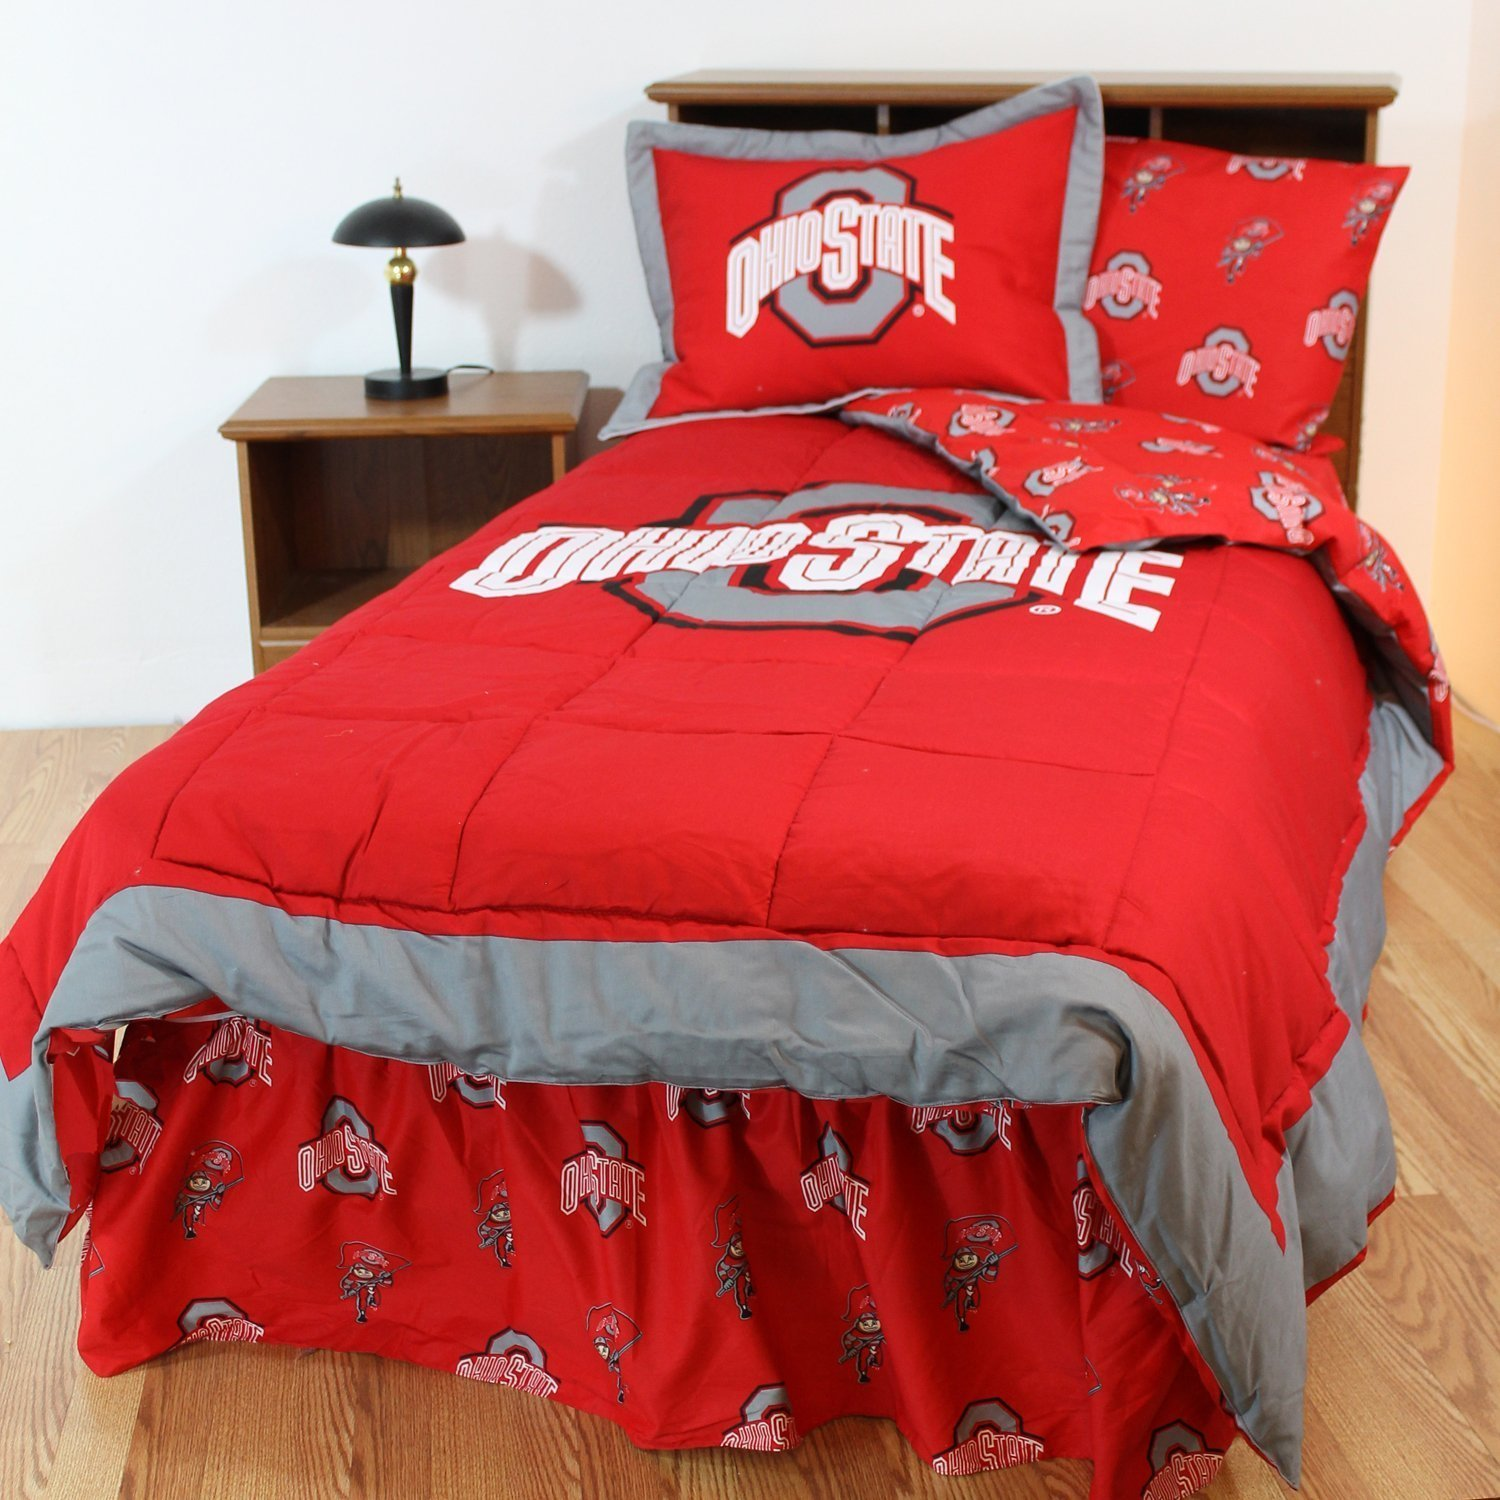 Best Dorm Room Bedding With Pictures